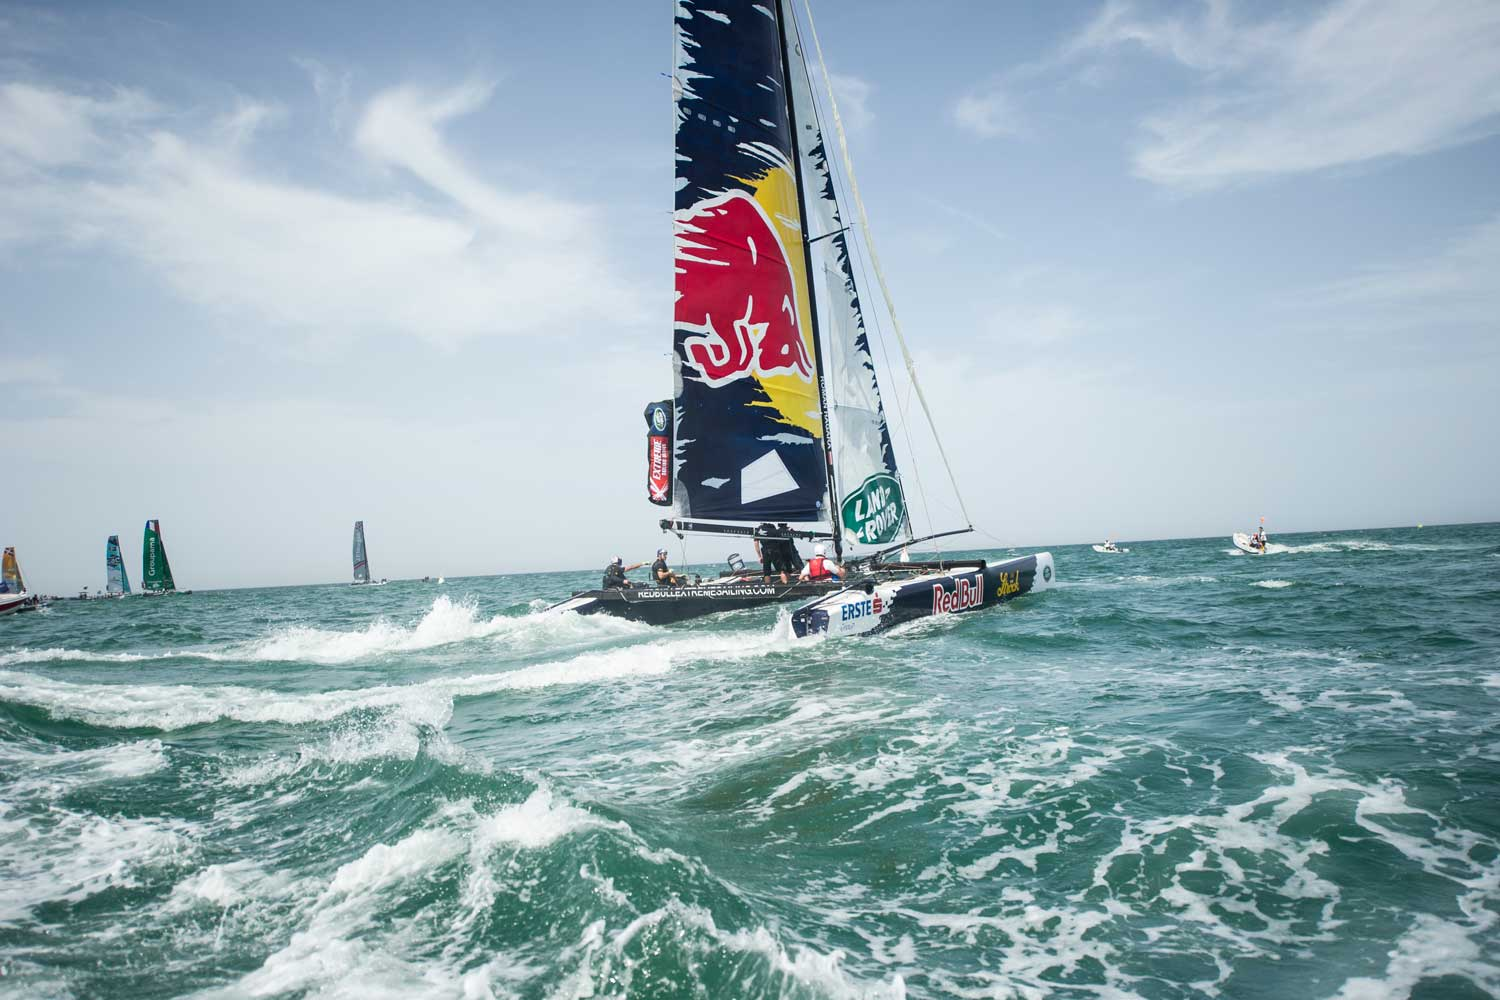 Contestants in the Extreme Sailing Series in Muscat, Oman.